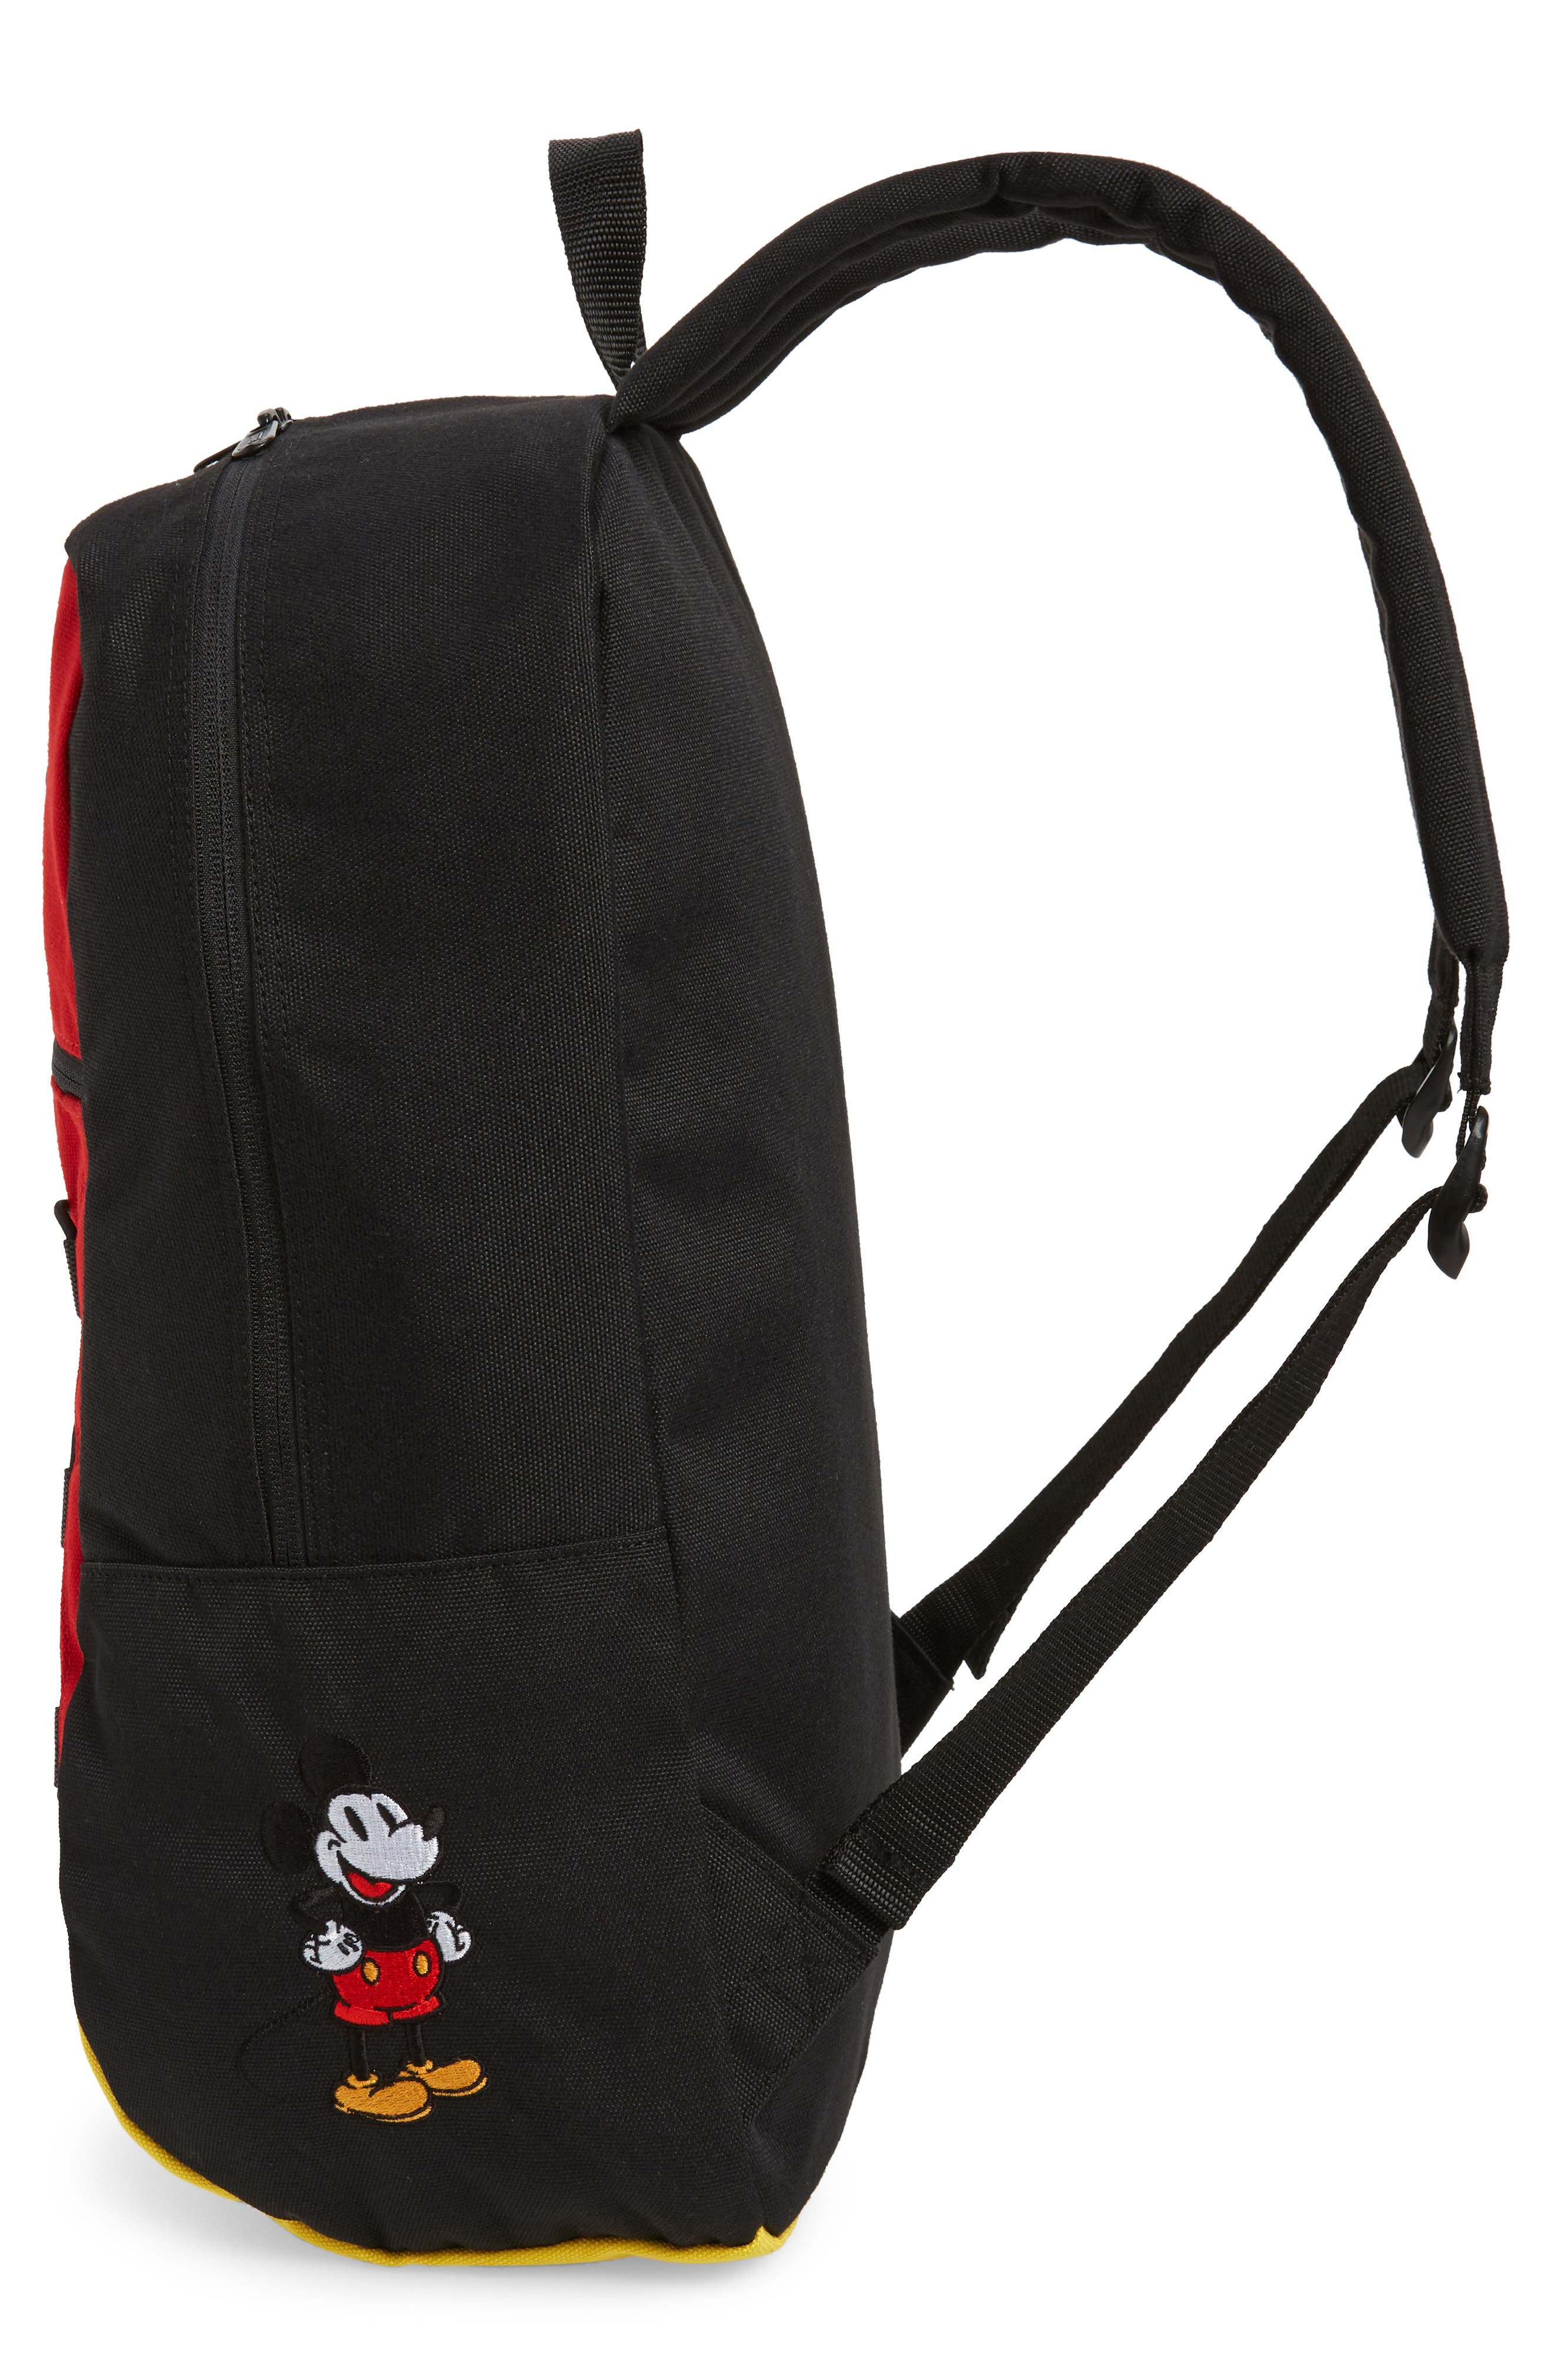 x Disney Mickey's 90th Anniversary - Snag Plus Backpack,                             Alternate thumbnail 5, color,                             600